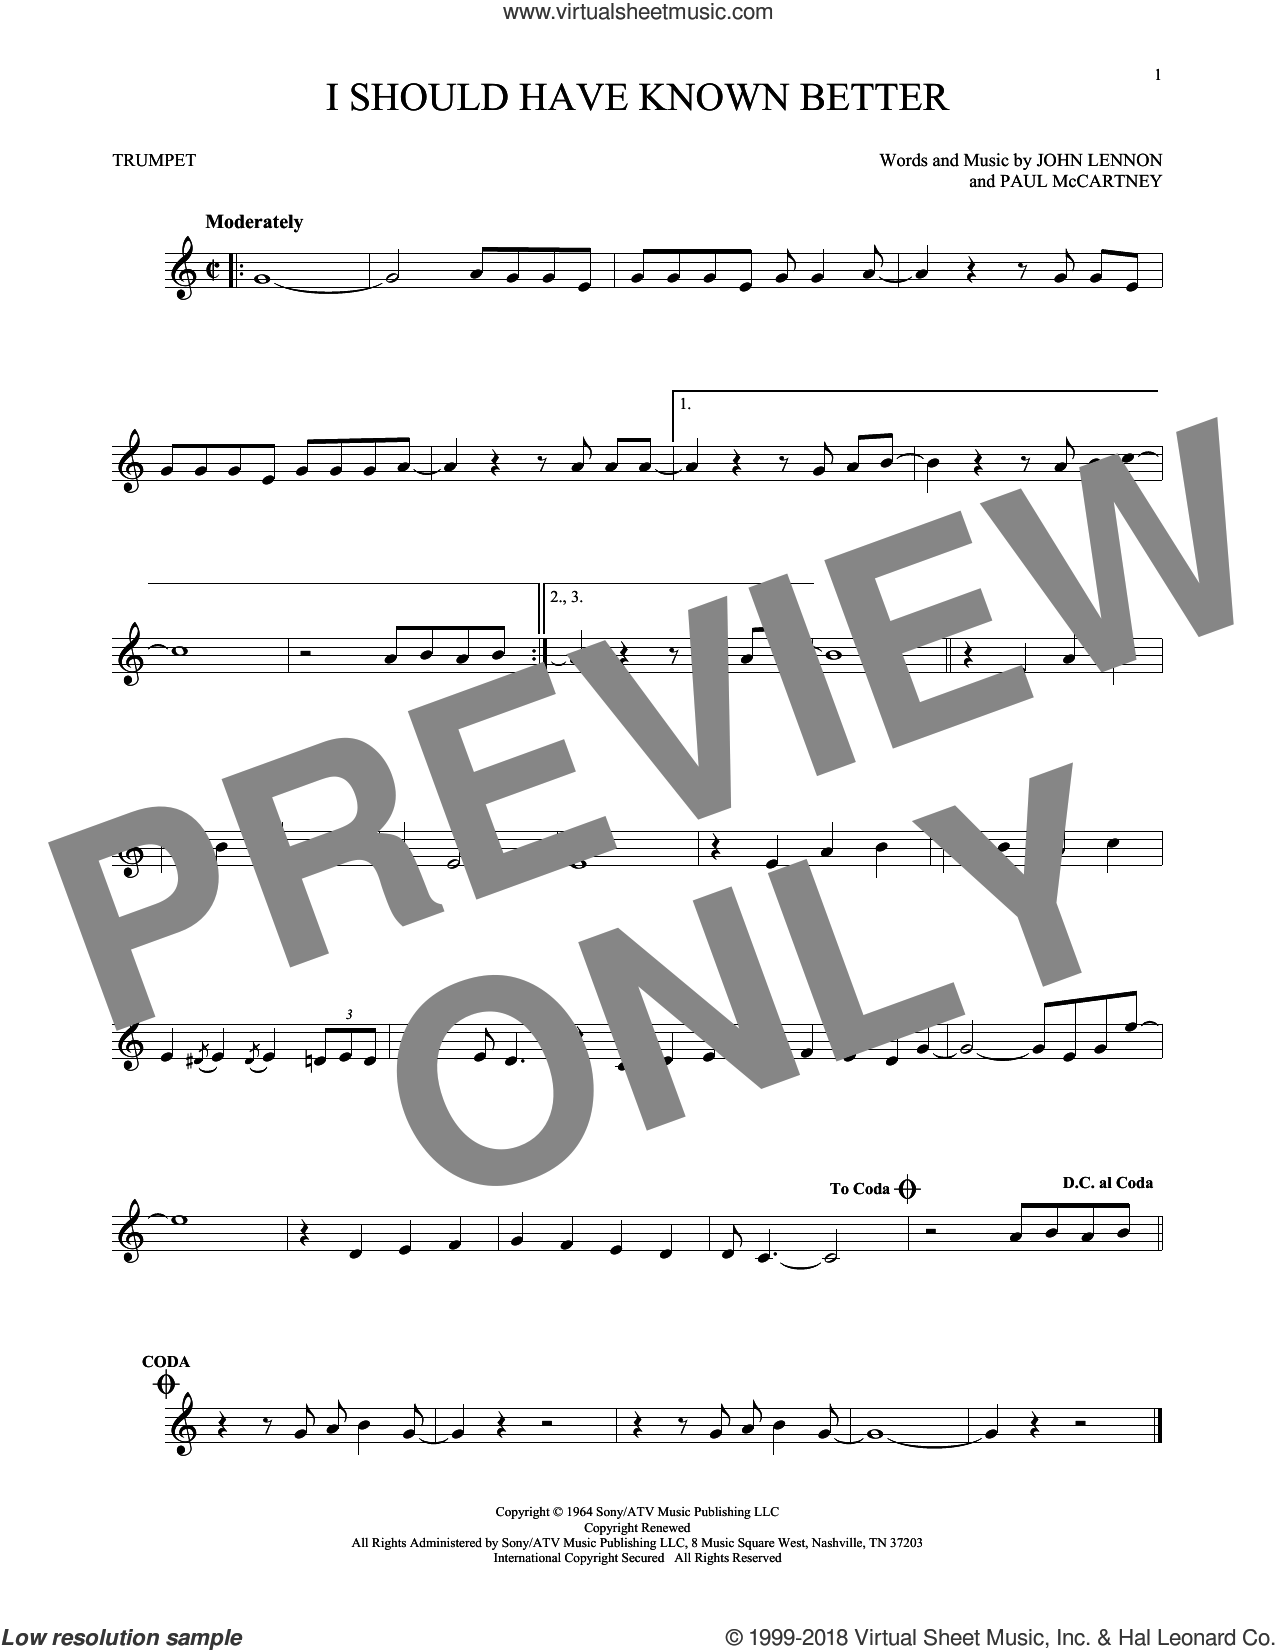 I Should Have Known Better sheet music for trumpet solo by Paul McCartney, The Beatles and John Lennon. Score Image Preview.